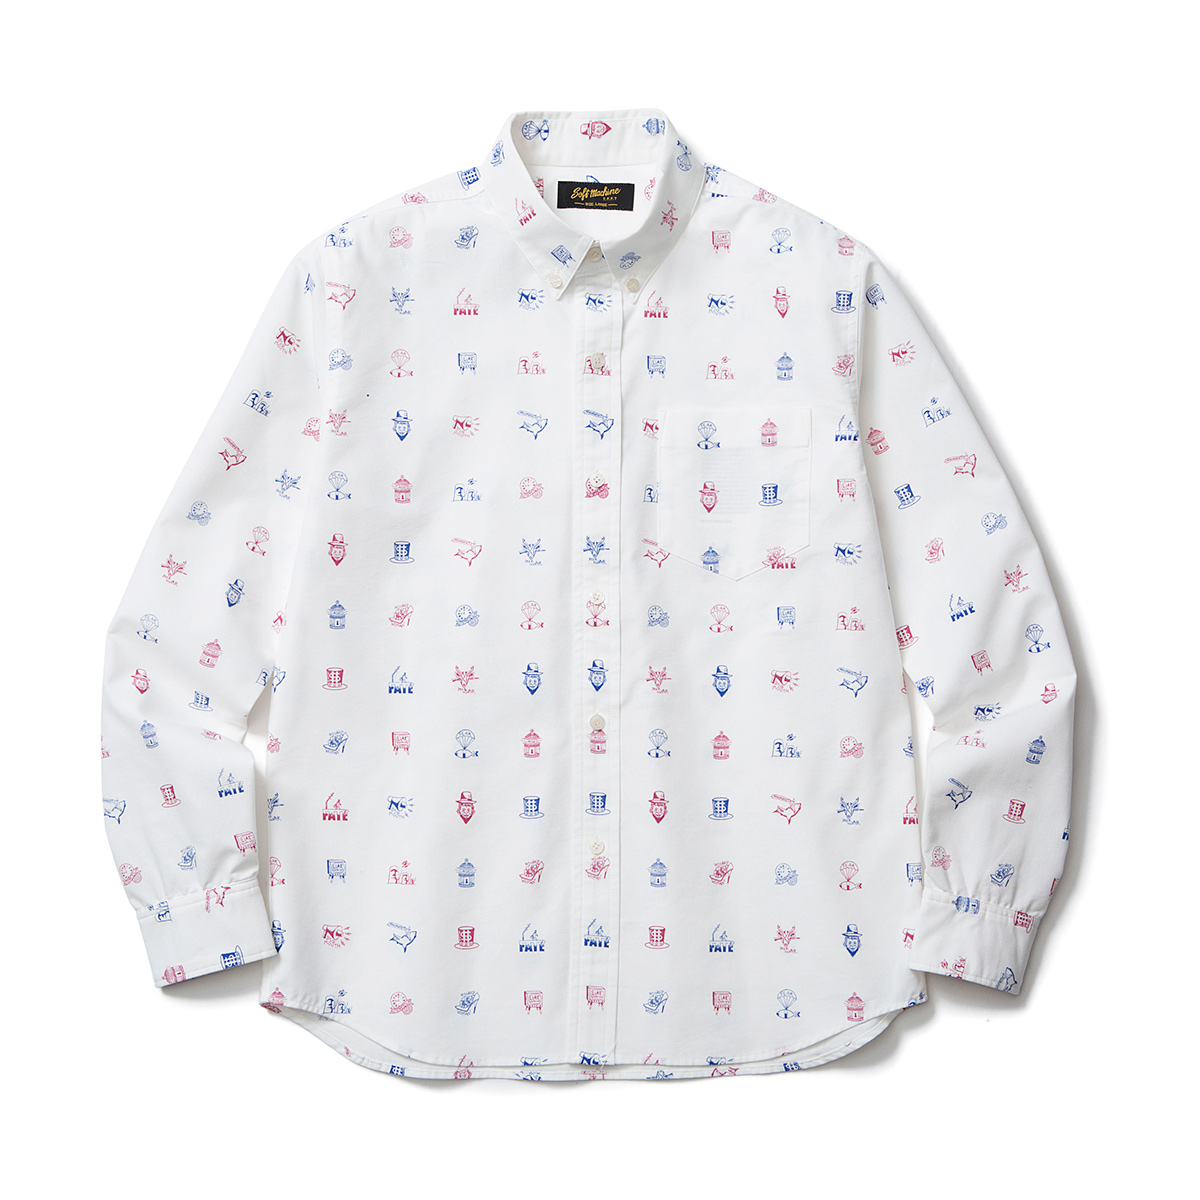 ILLUSION SHIRTS L/S